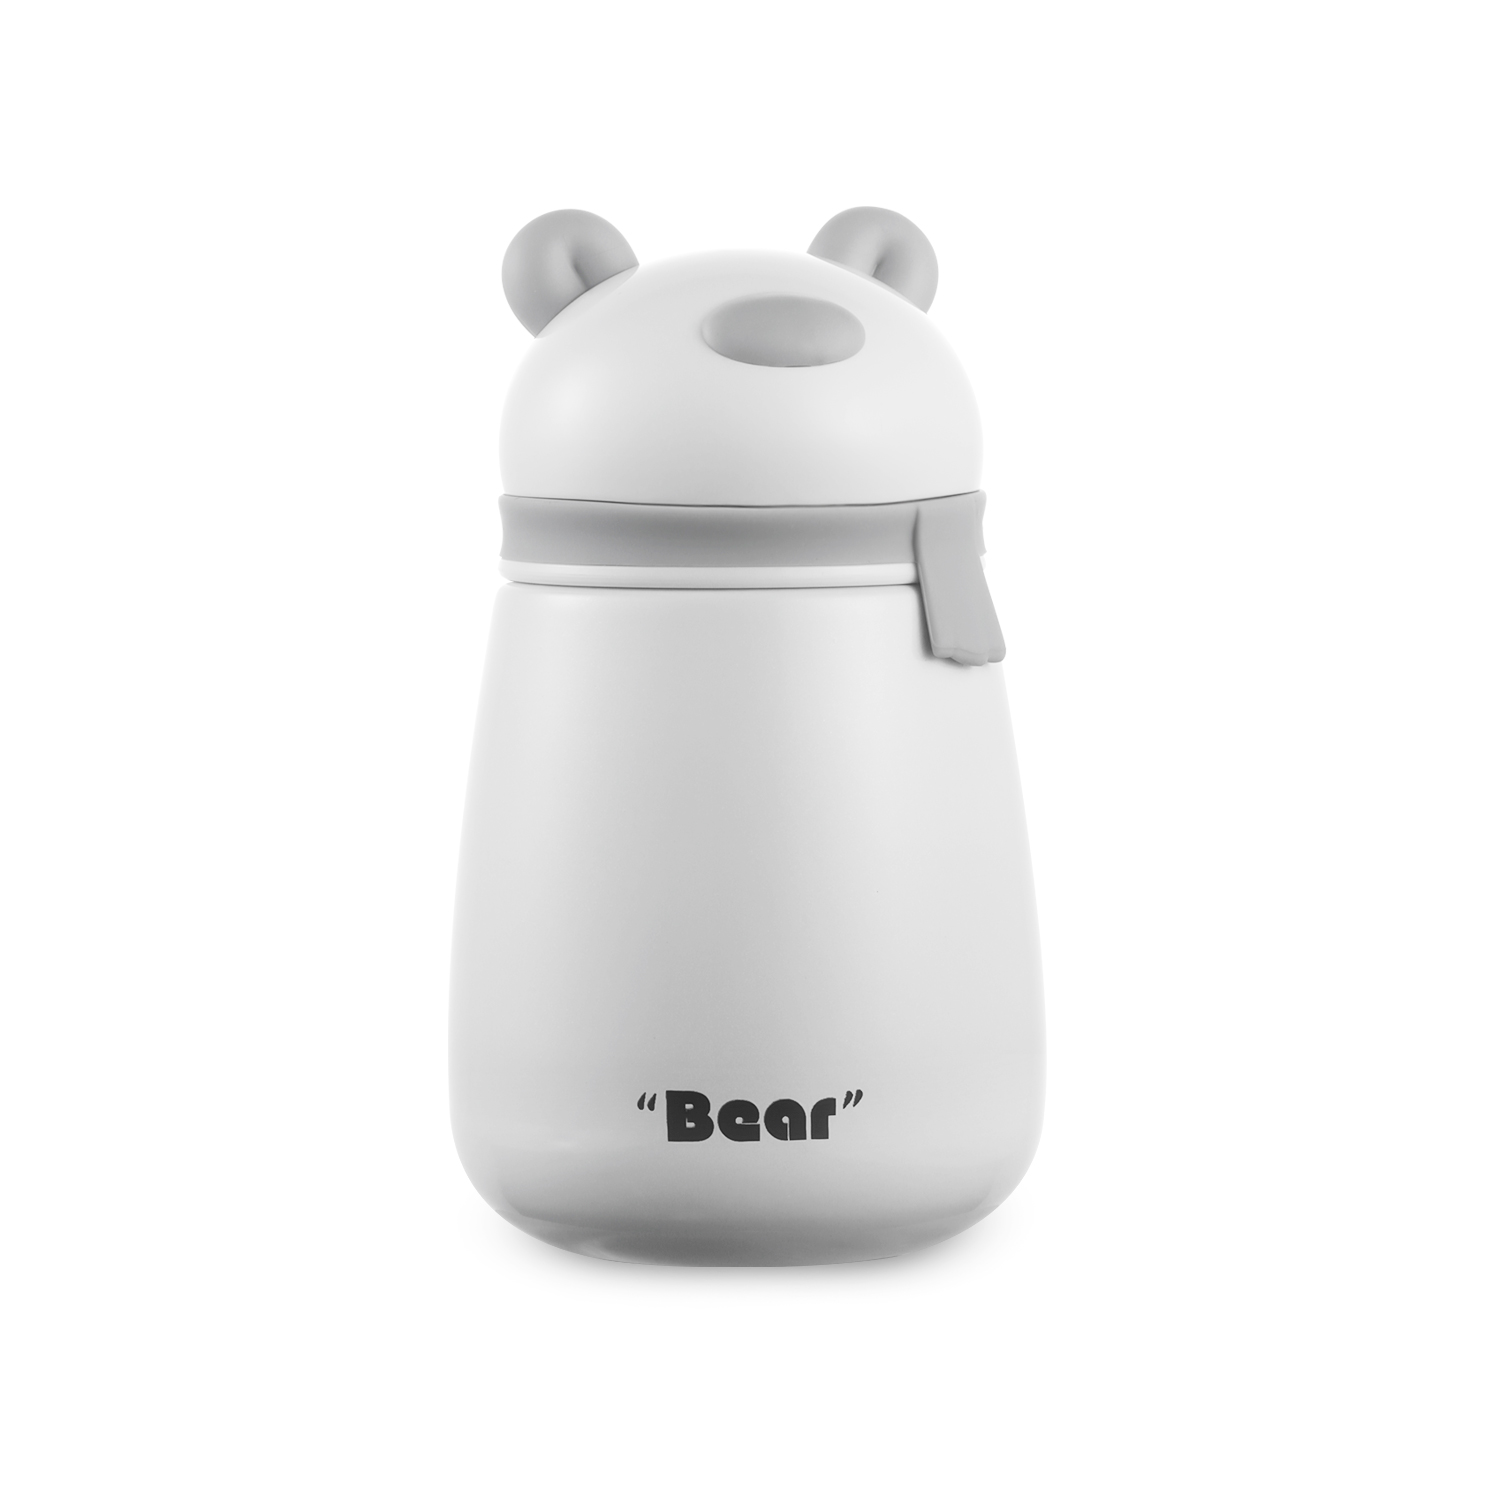 270ml Bear Vacuum Insulated Double Walled Thermal Travel Mug Leak Proof & BPA Free Portable Vacuum Flasks & Thermoses Thermocup